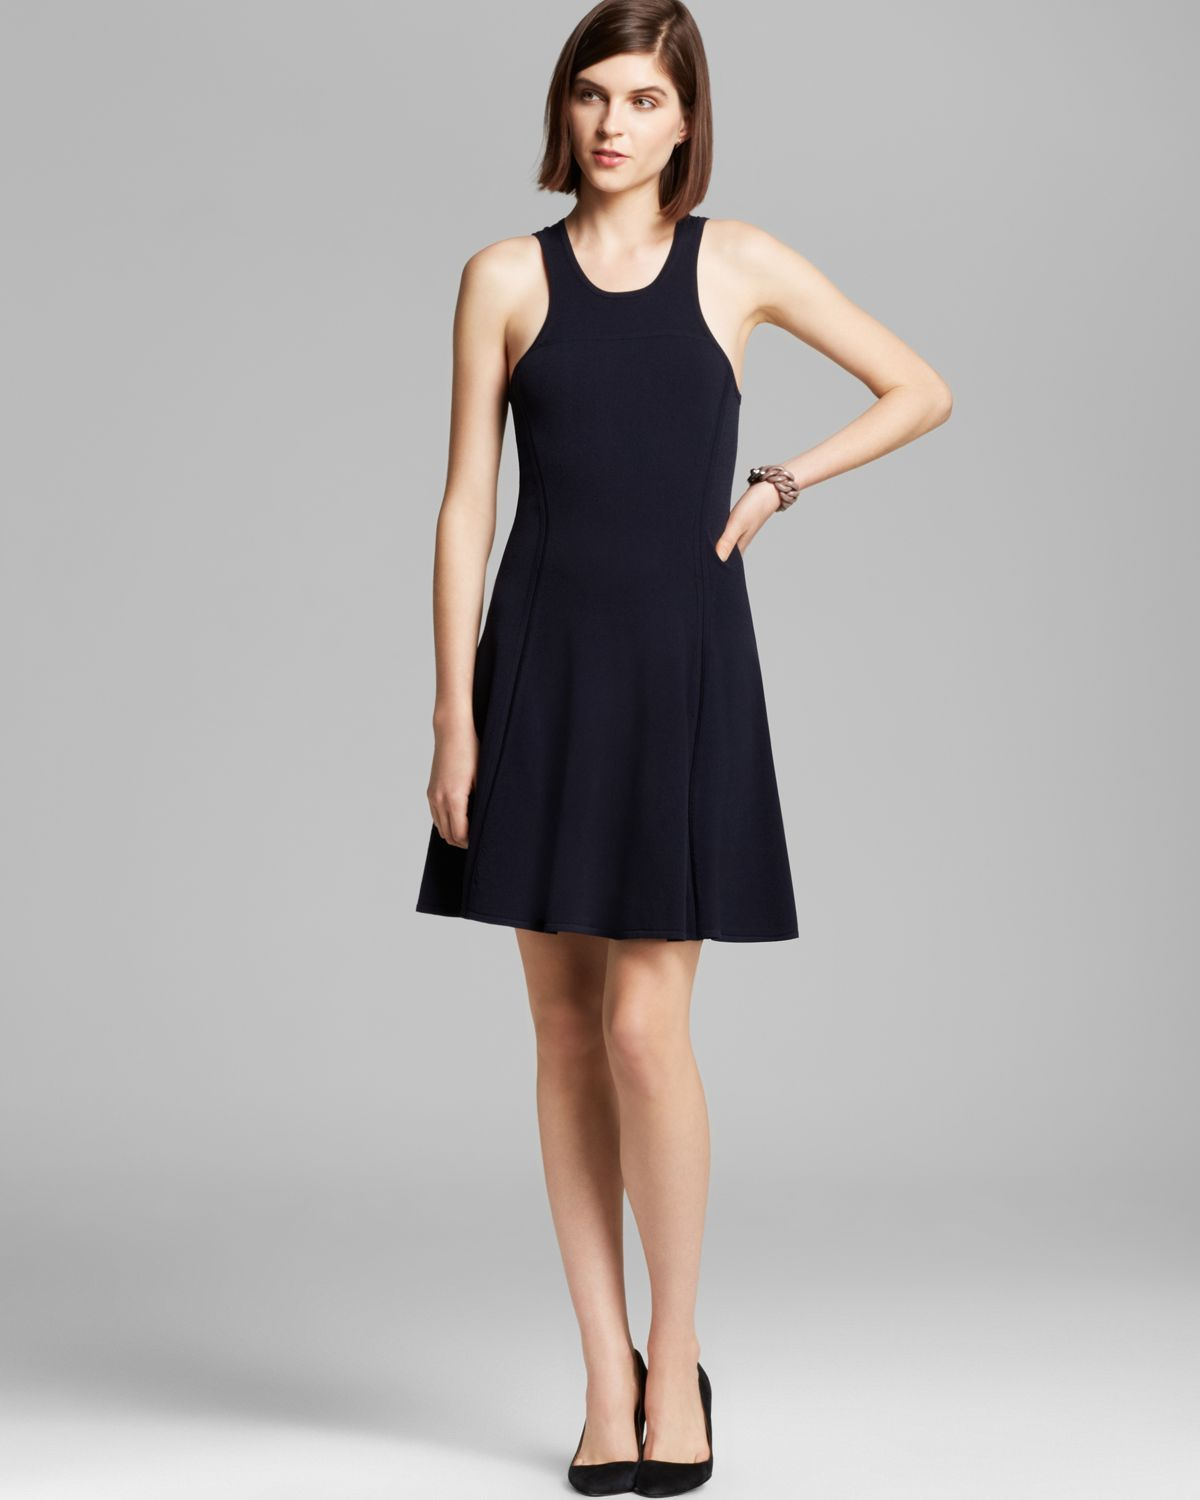 Autumn Cashmere Dress Carved Fit And Flare In Blue Navy